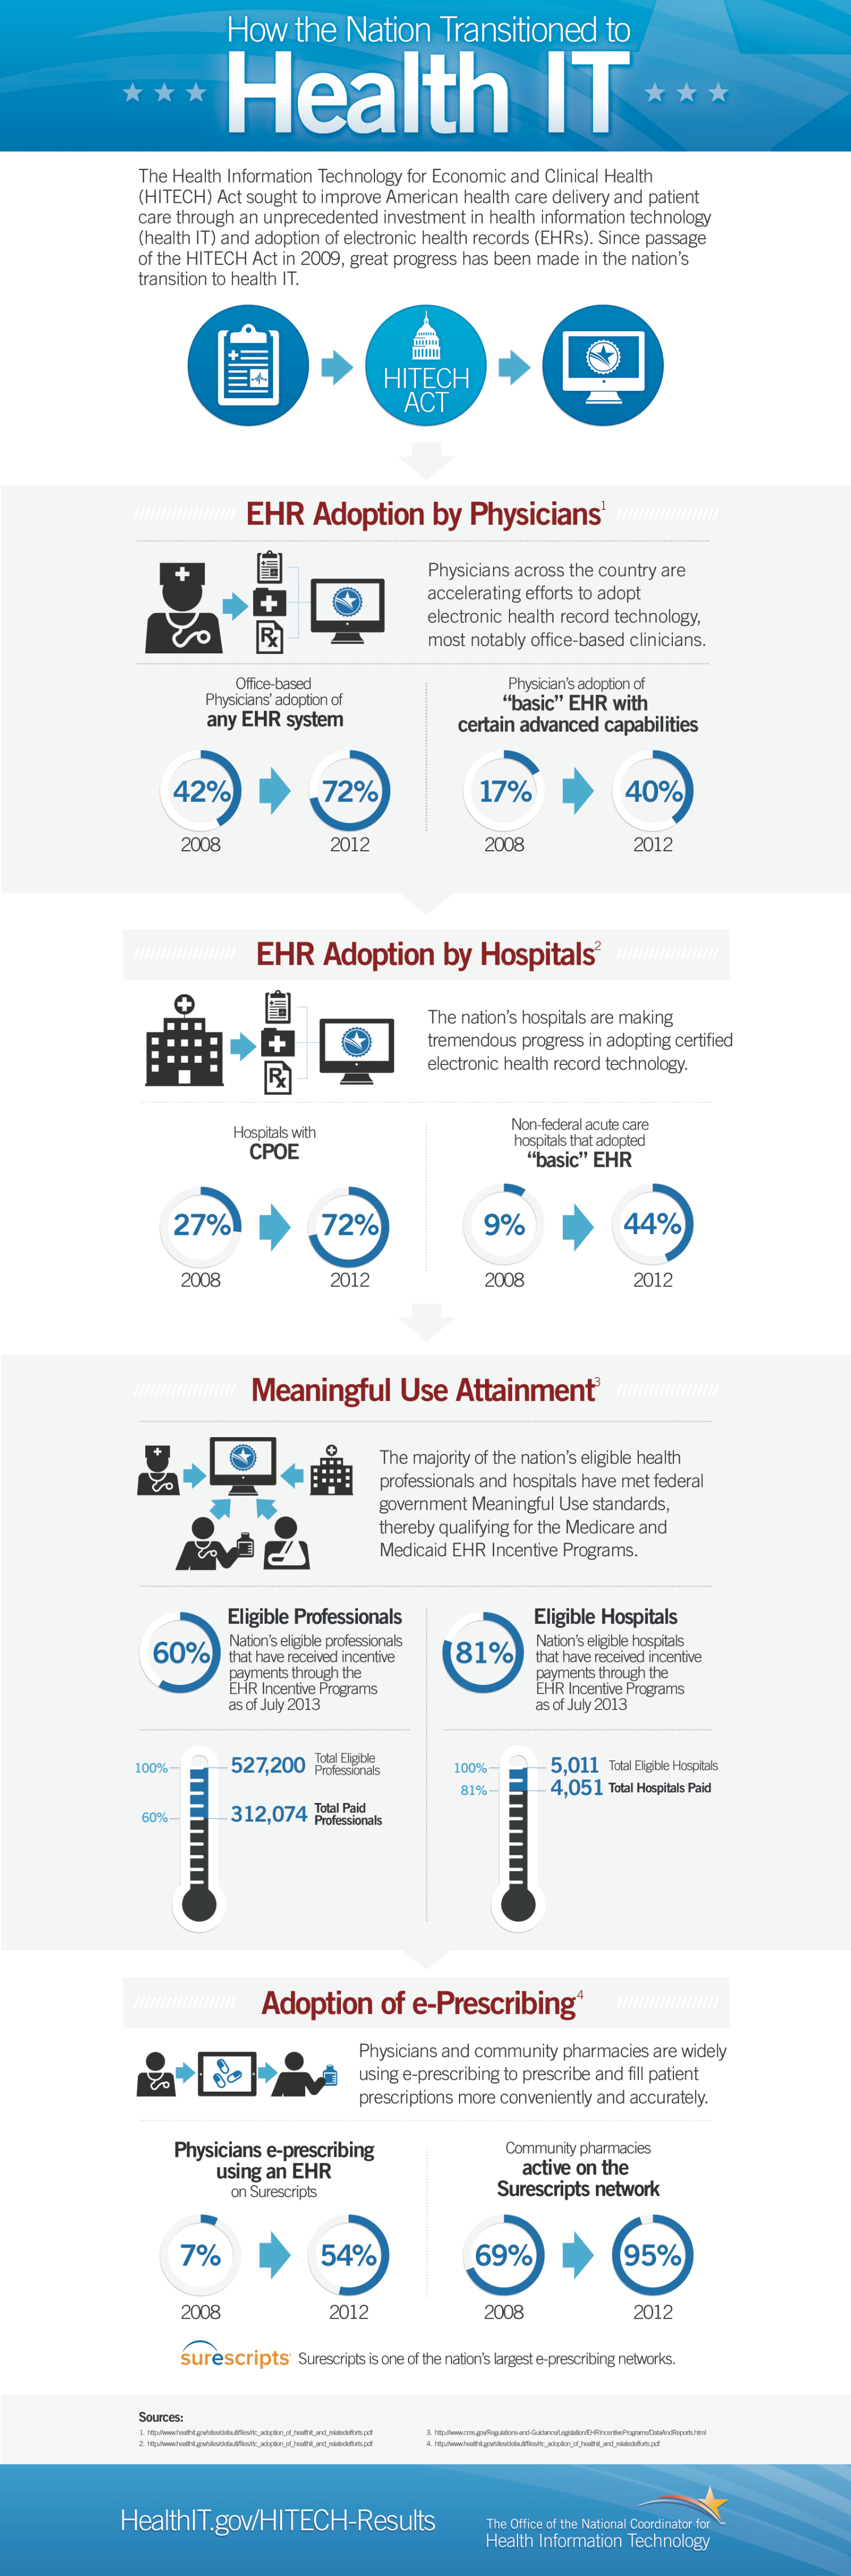 How The Nation Transitioned To Health IT (Infographic)